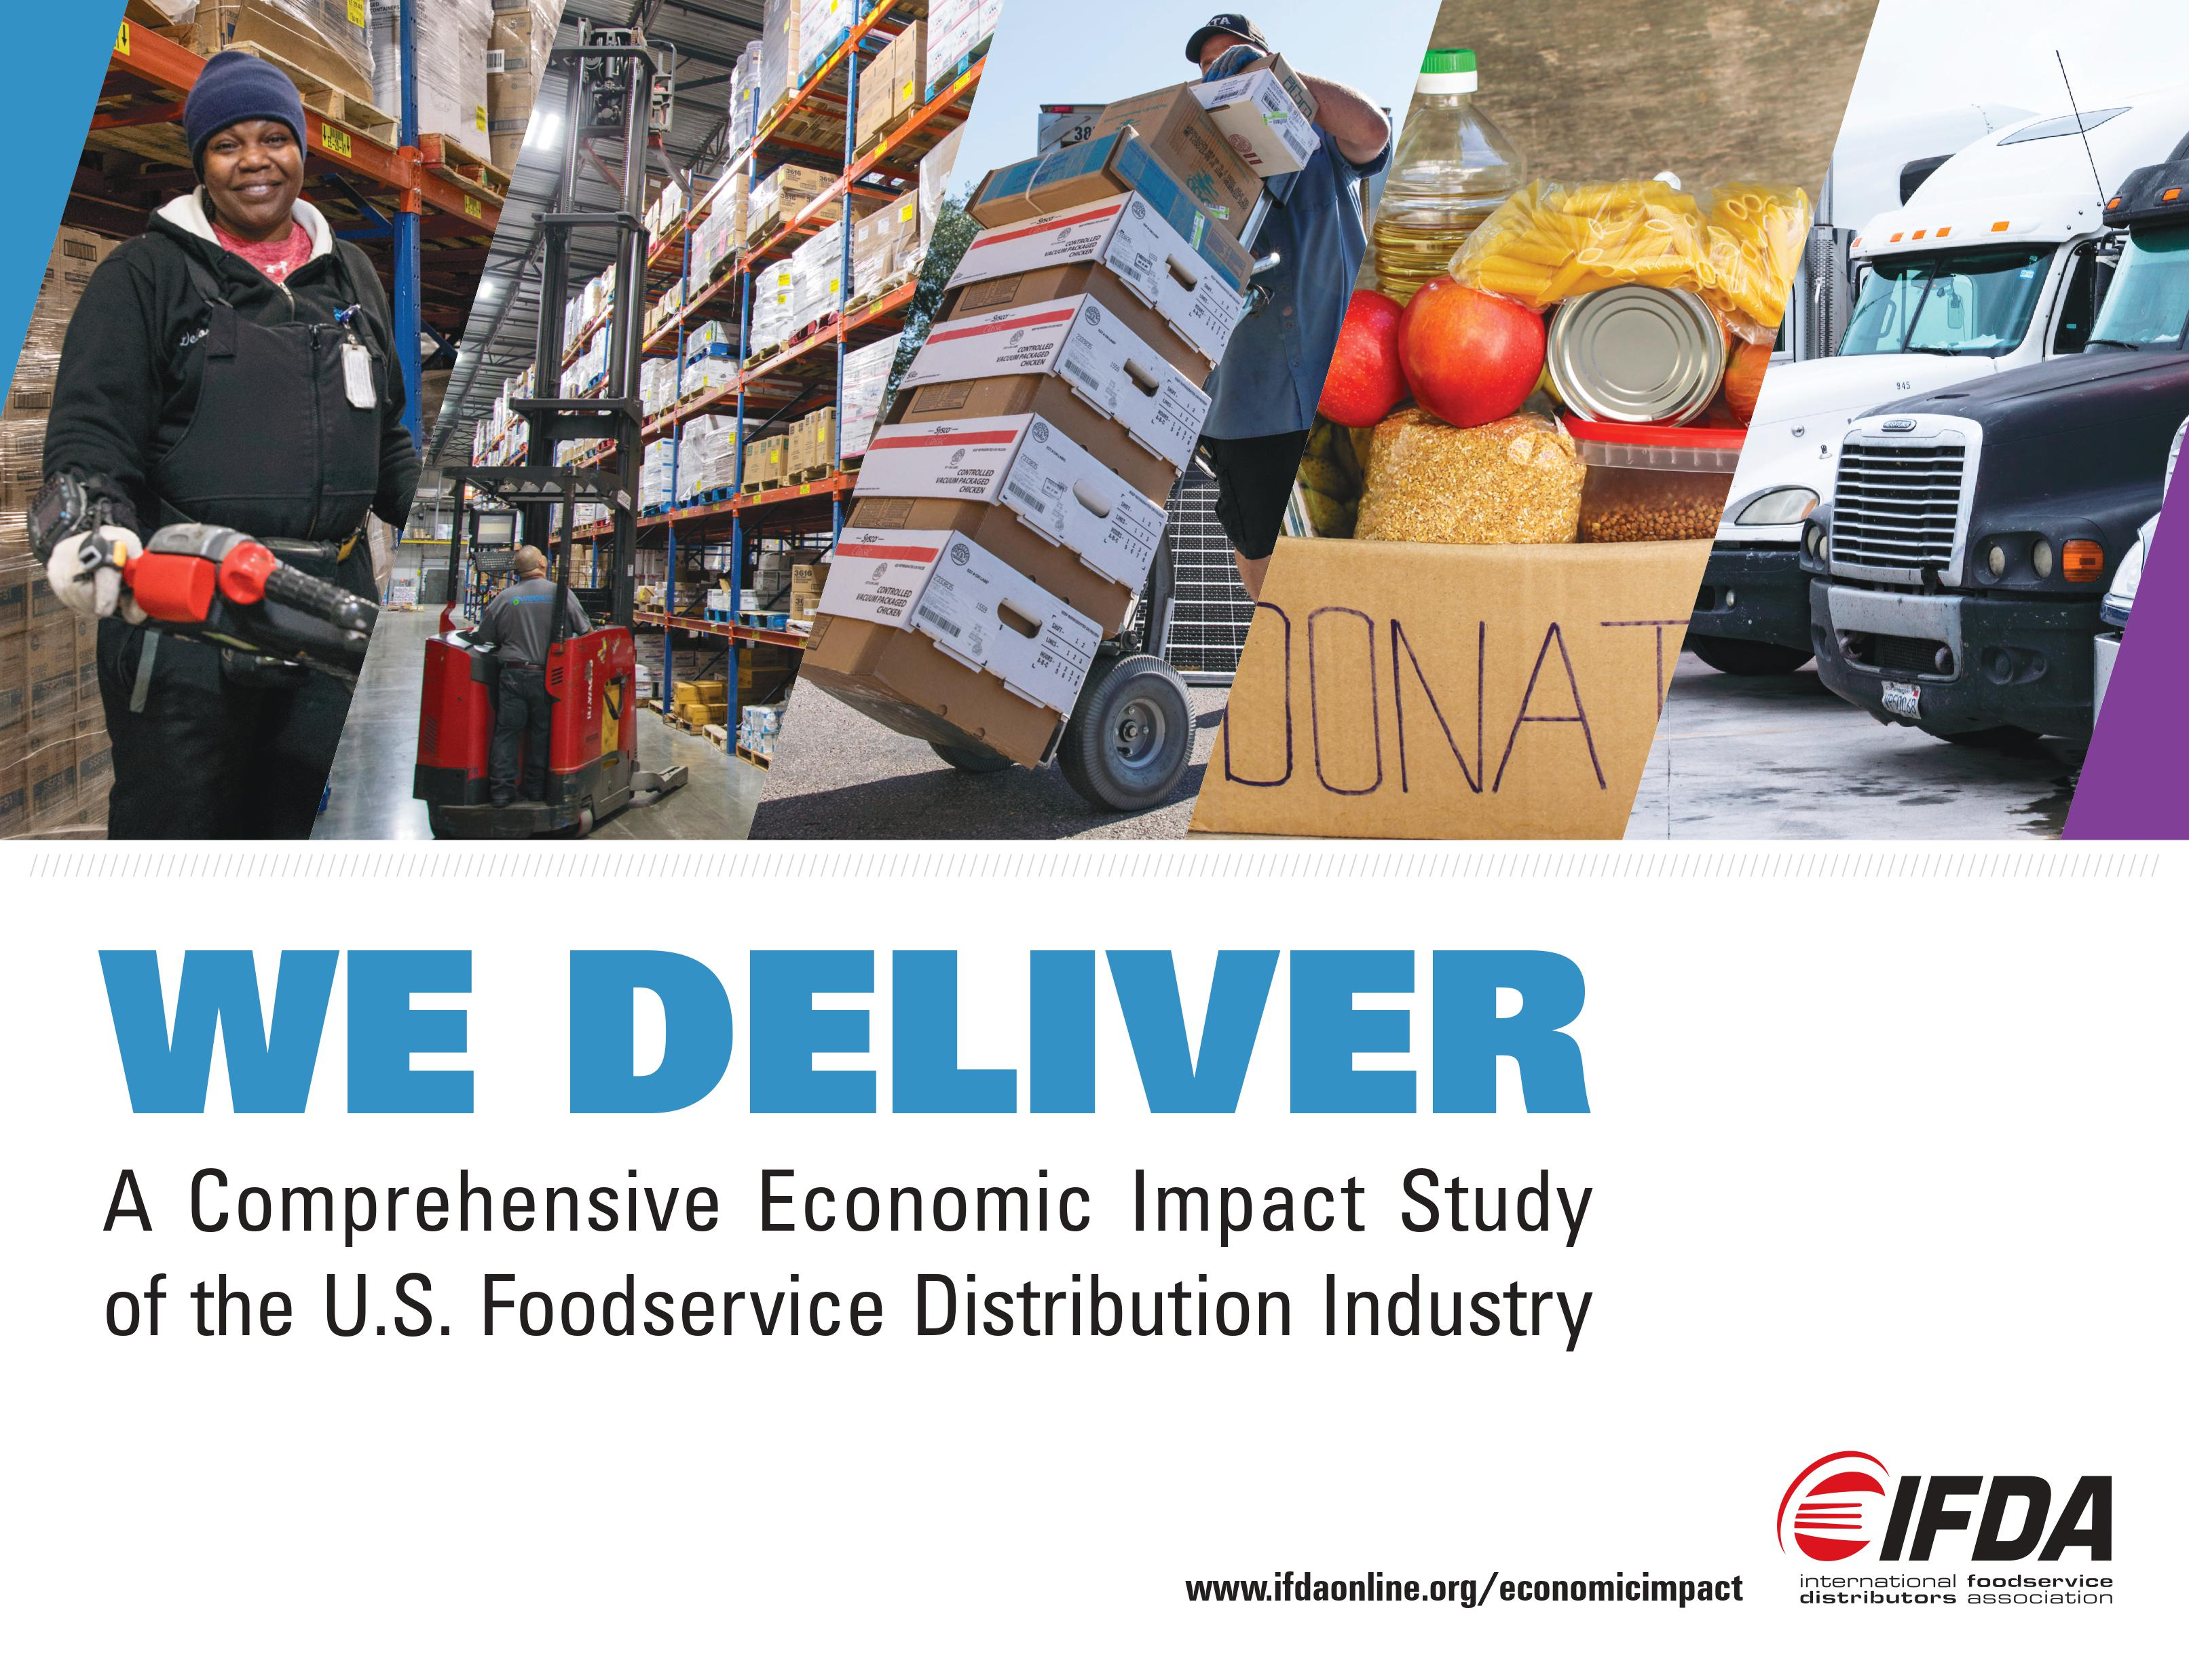 Thumbnail of Foodservice Distribution Industry Economic Impact